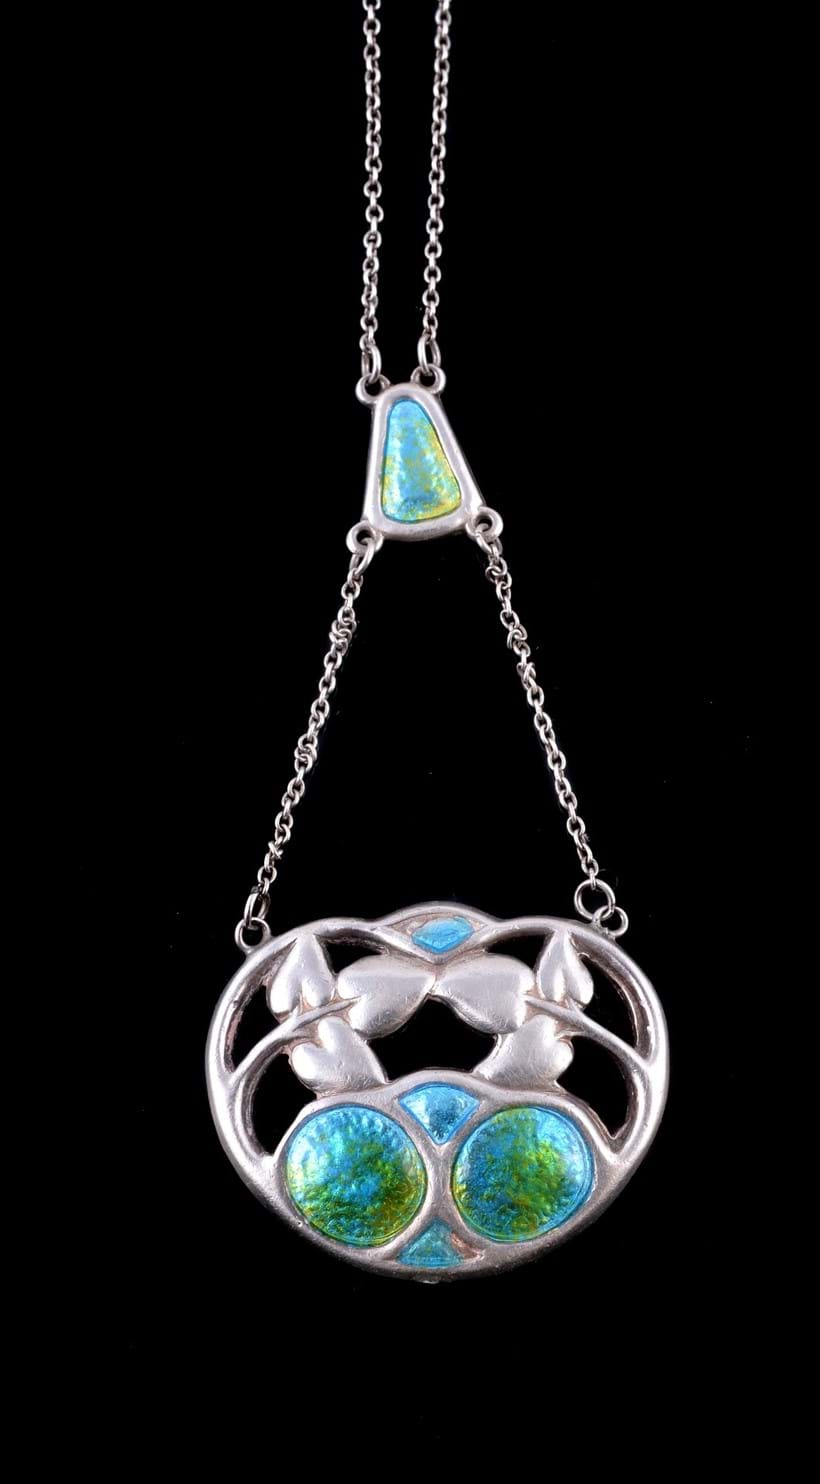 Inline Image - Lot 479, Arts & Crafts silver and enamel pendant by Charles Horner, Chester, 1909, the openwork foliate panel with green and blue enamel detail, with full Chester hallmarks, maker's mark CH, on a belcher chain; est. £80-120 (+fees)